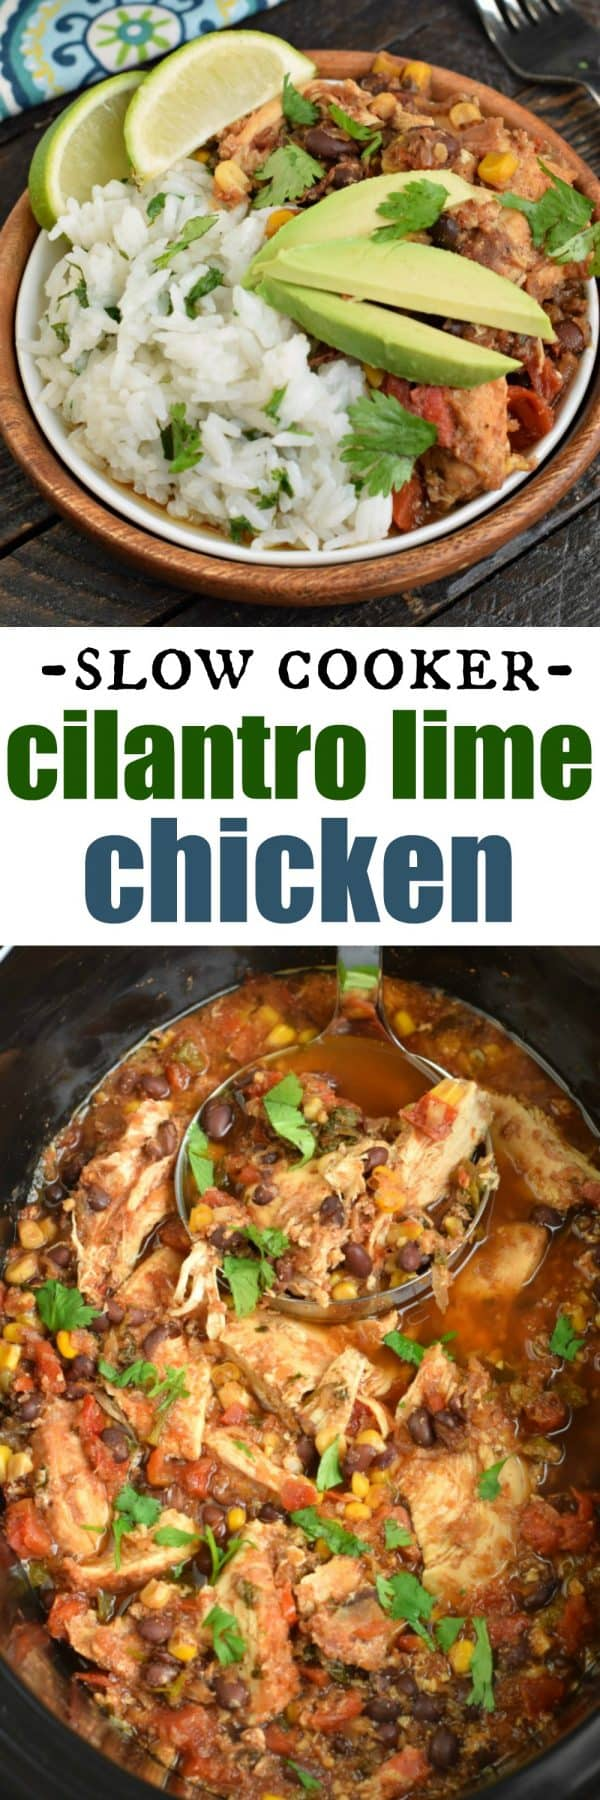 Cilantro Lime Chicken made in the crockpot (slow cooker) or as a freezer meal is packed with flavor! You're family is going to love this dinner, you're going to love how easy it is to prepare!